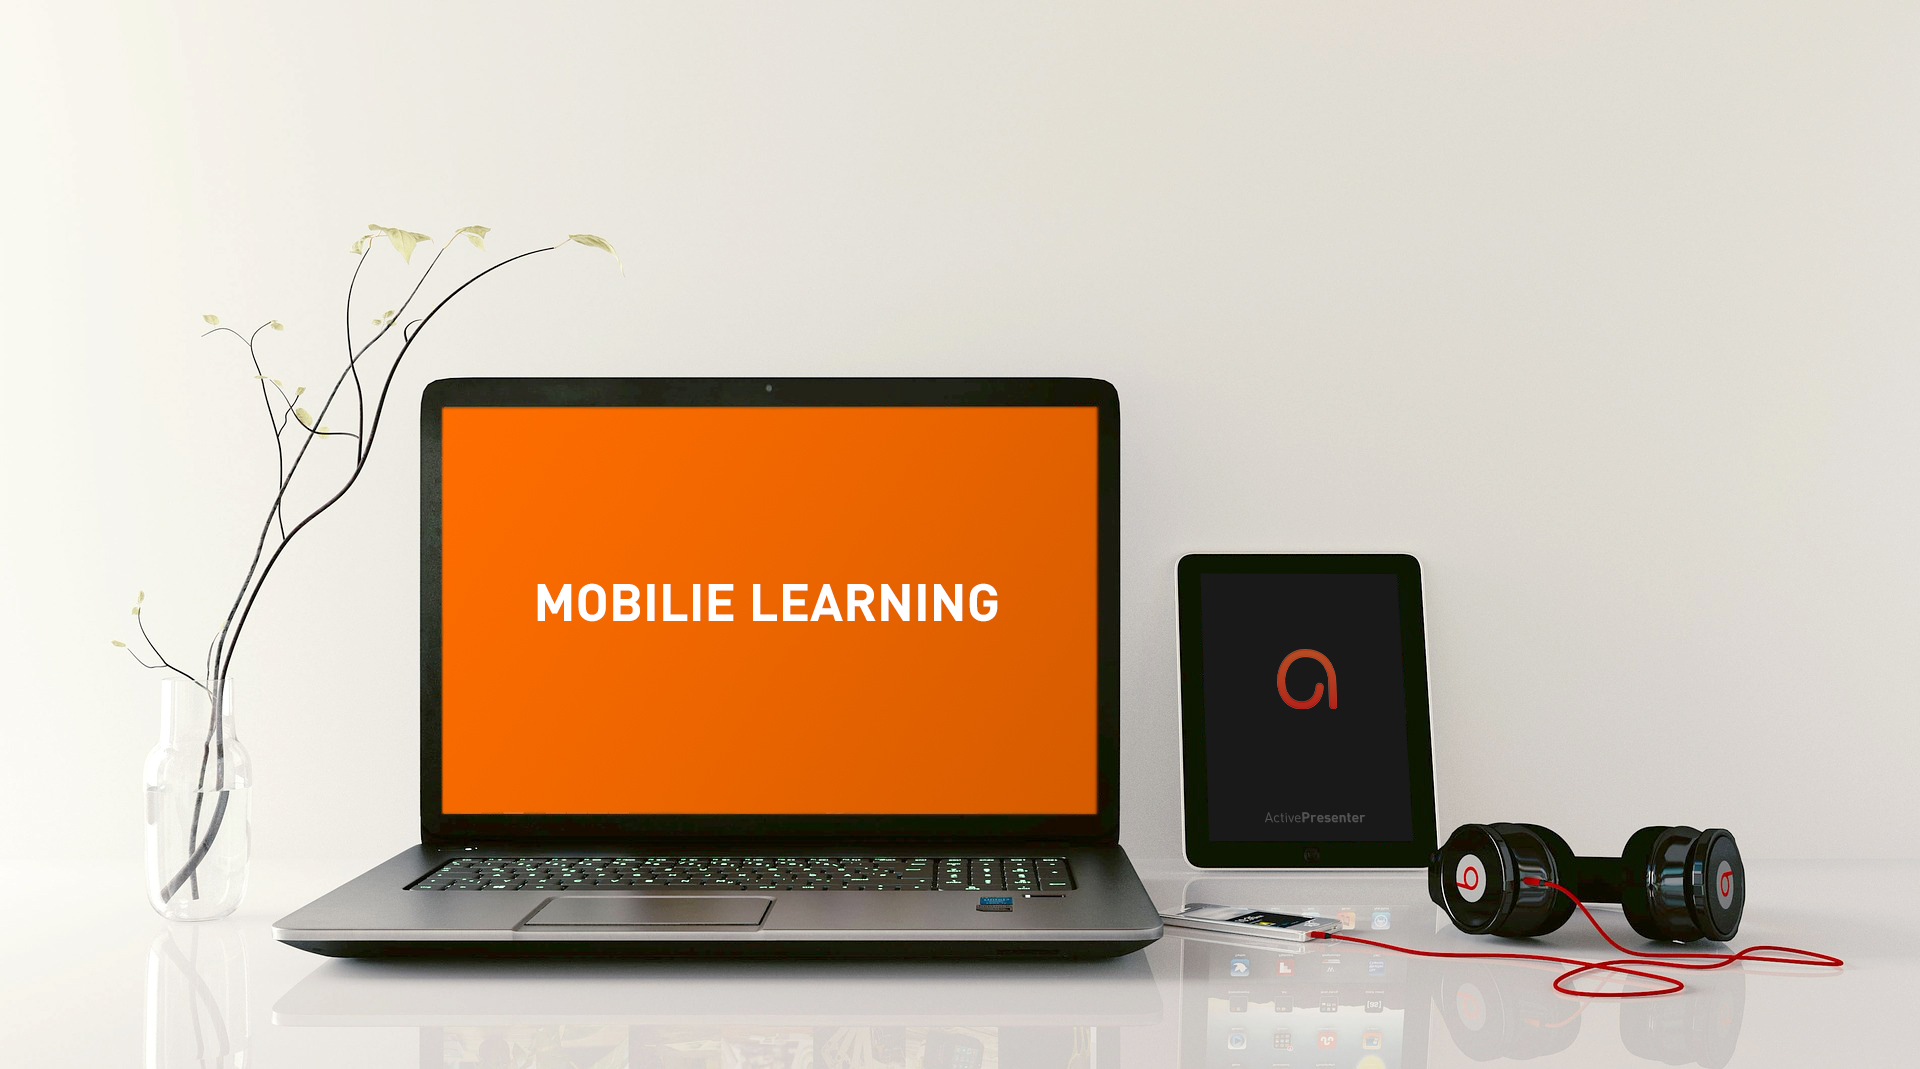 Mobile Learning is a Revolution in Education